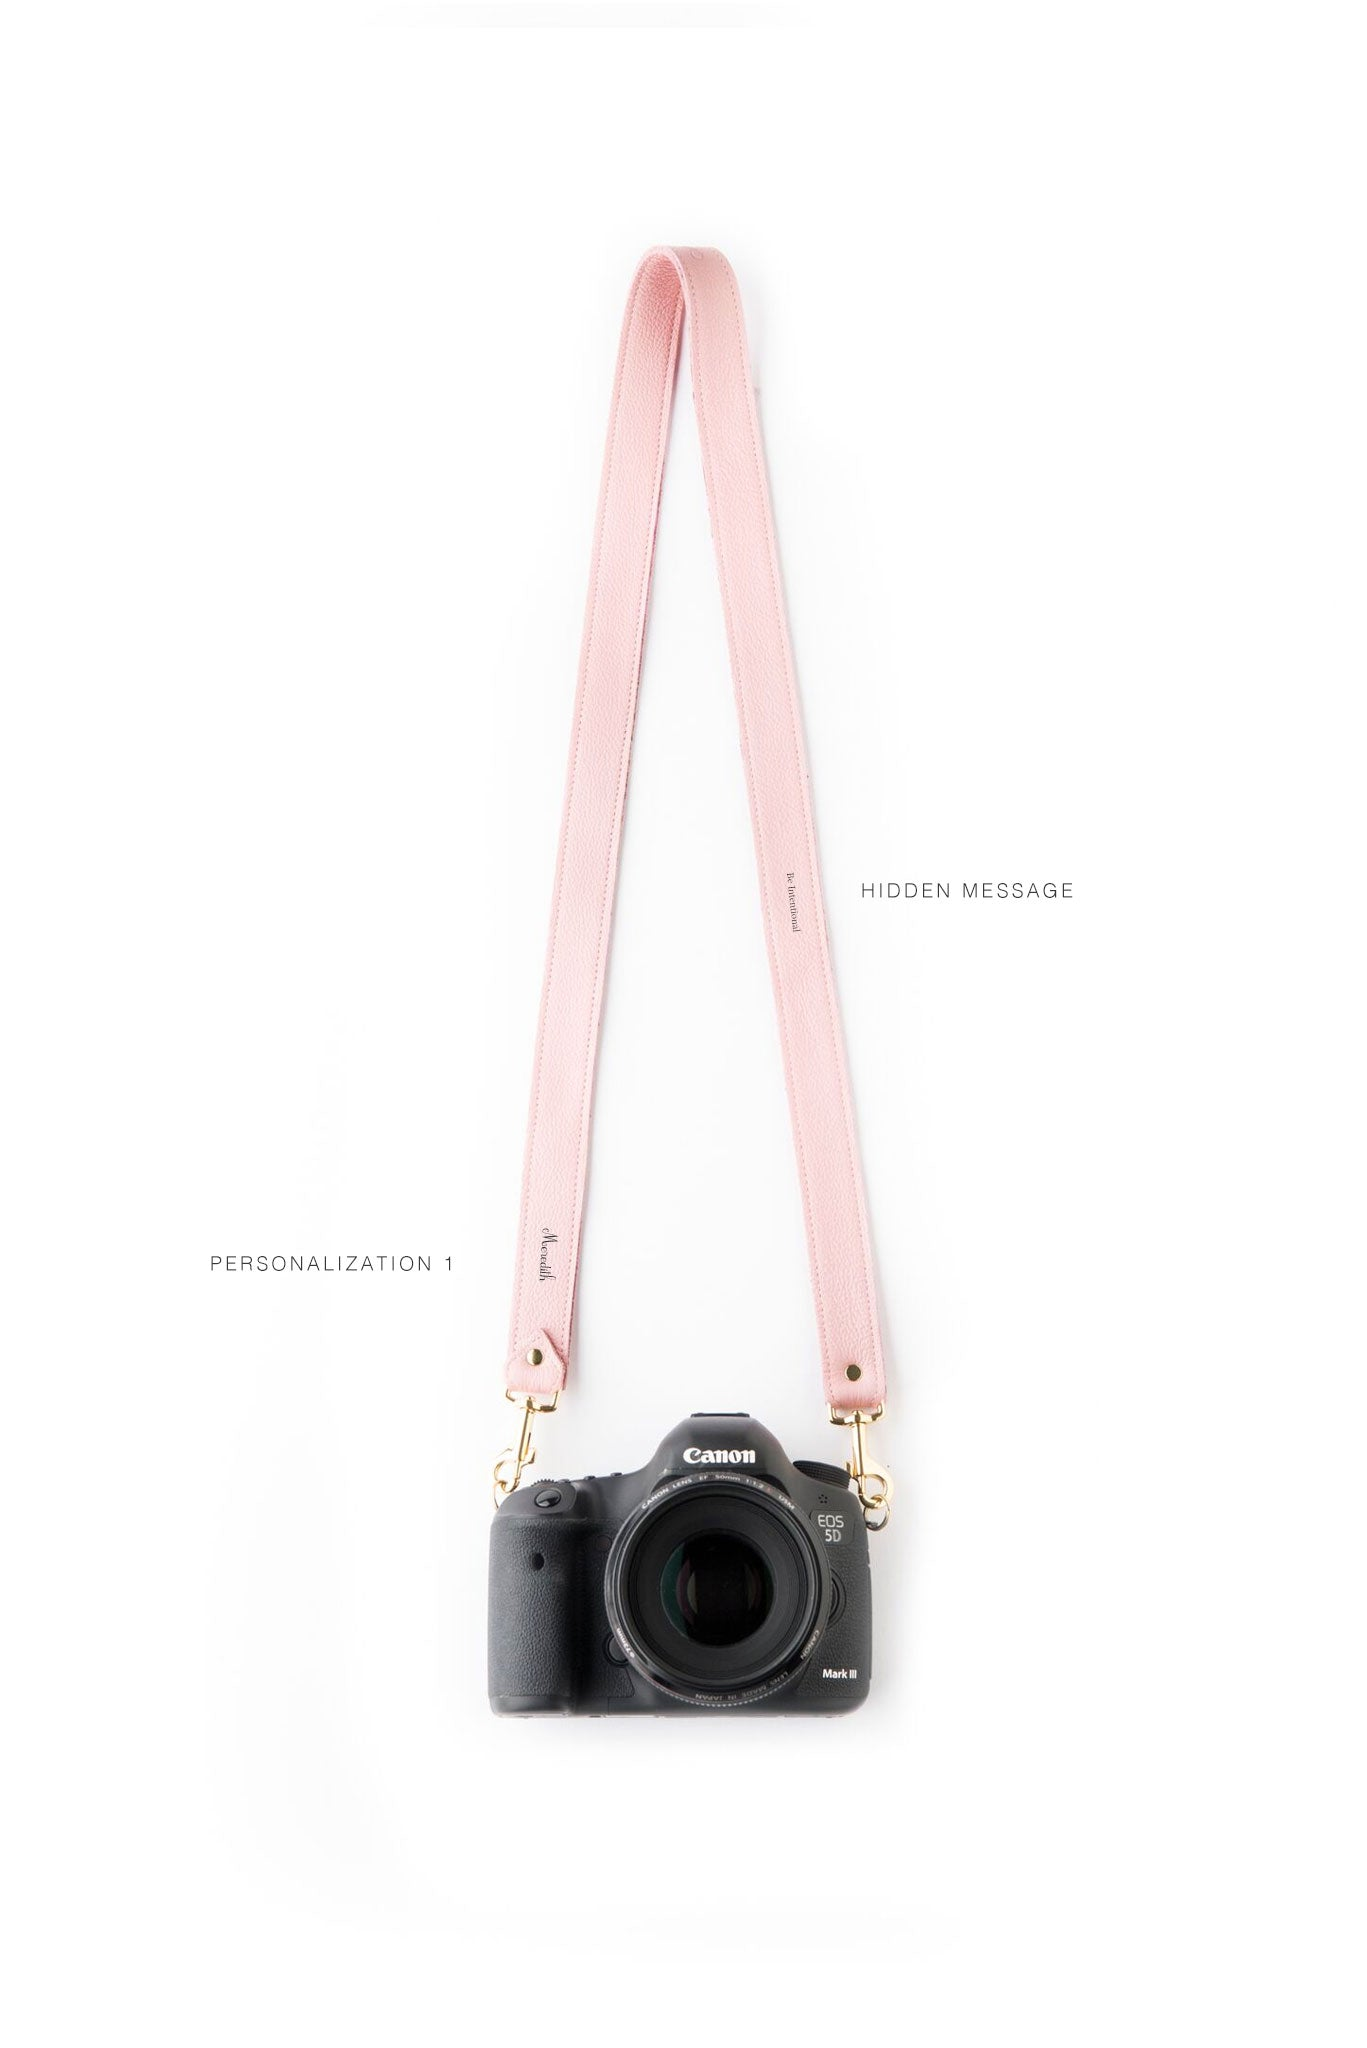 FOTO | The Designer in Rose - a rose pink genuine pebbled leather camera strap that can be personalized with a monogram or business logo, making this leather camera strap the perfect personalized gift.